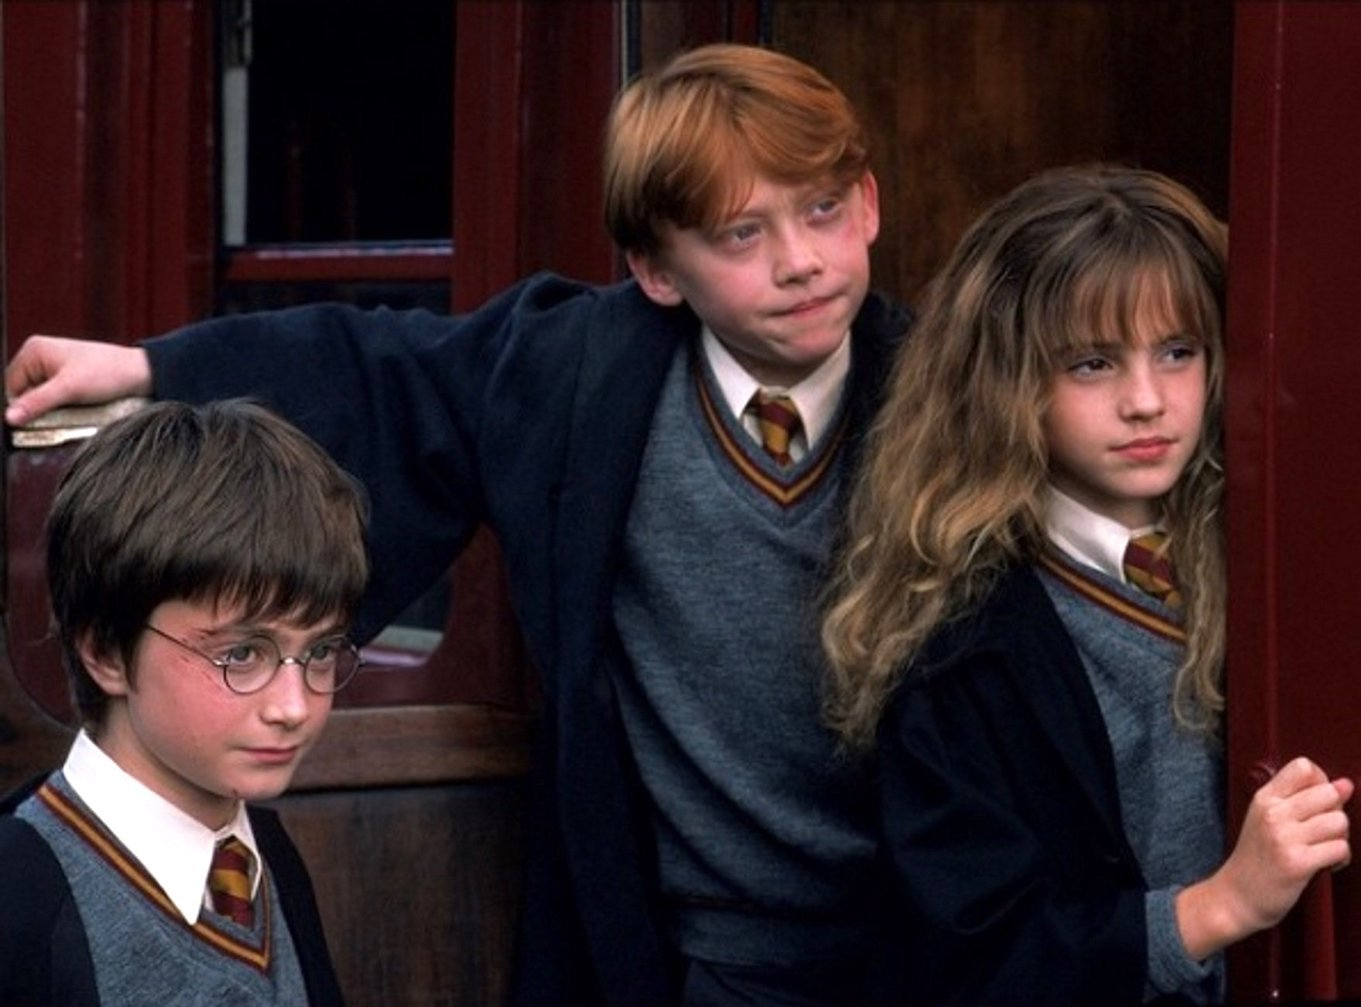 Get paid $1,000 to watch all 10 'Harry Potter' movies